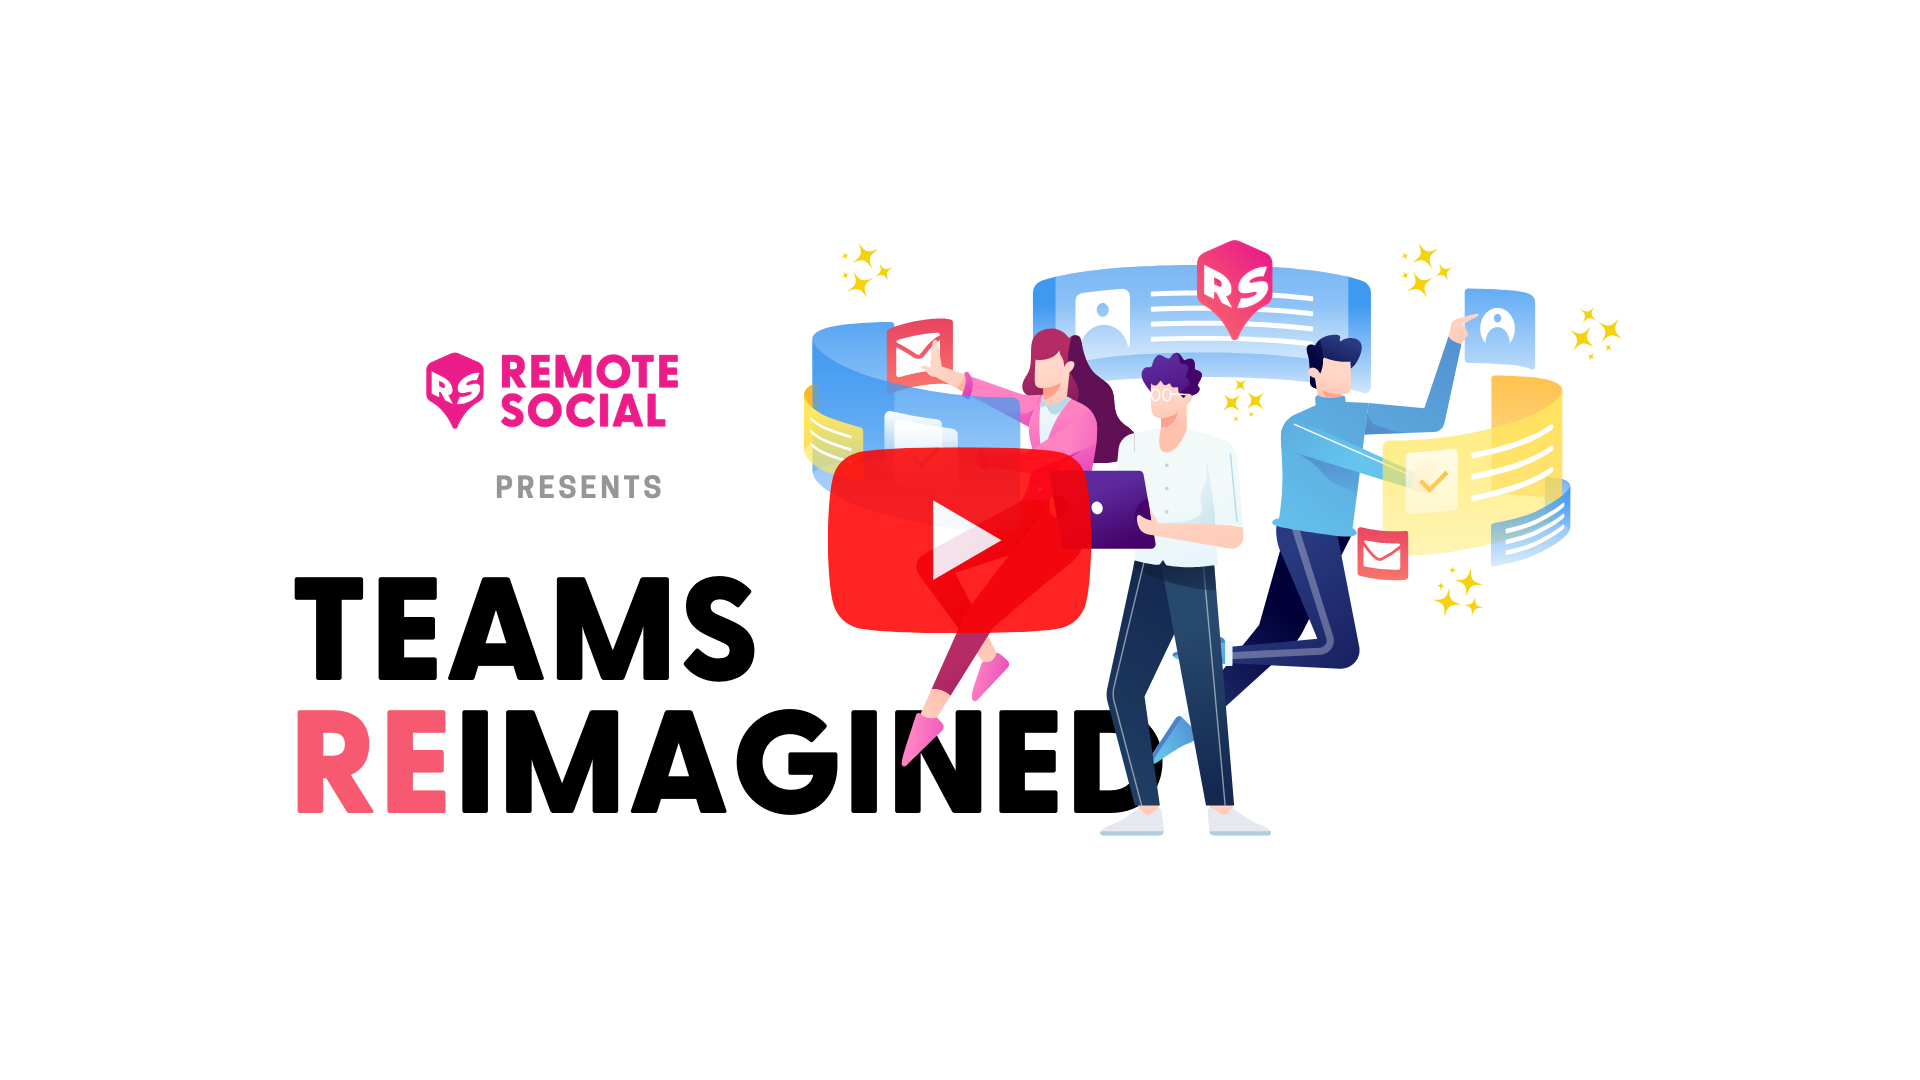 About Teams Reimagined